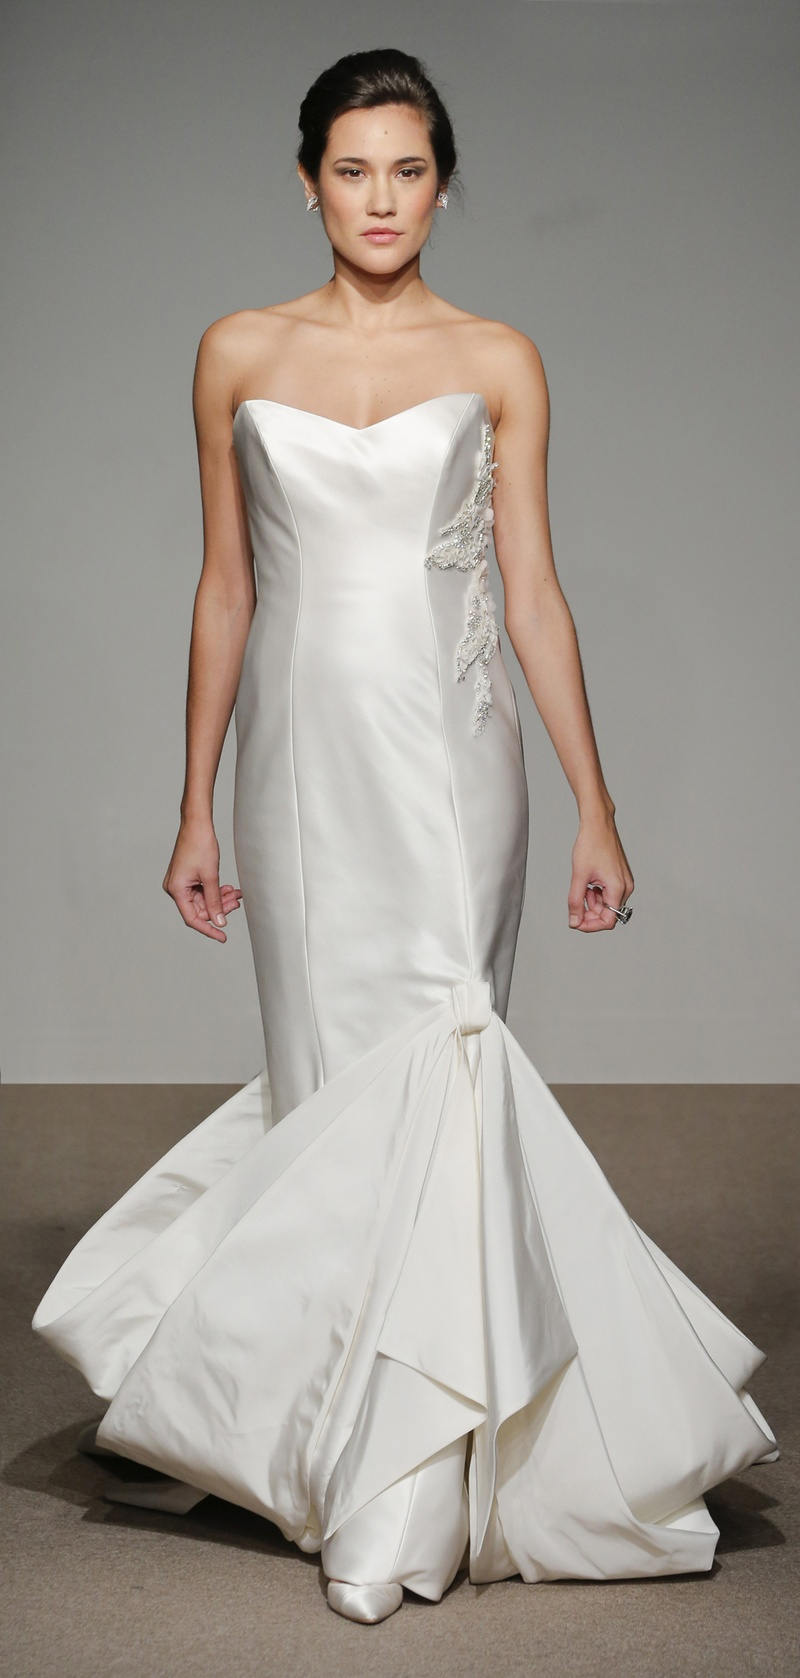 Sophisticated Yet Modern & Stylish Bridal Gowns from Anna Maier ...